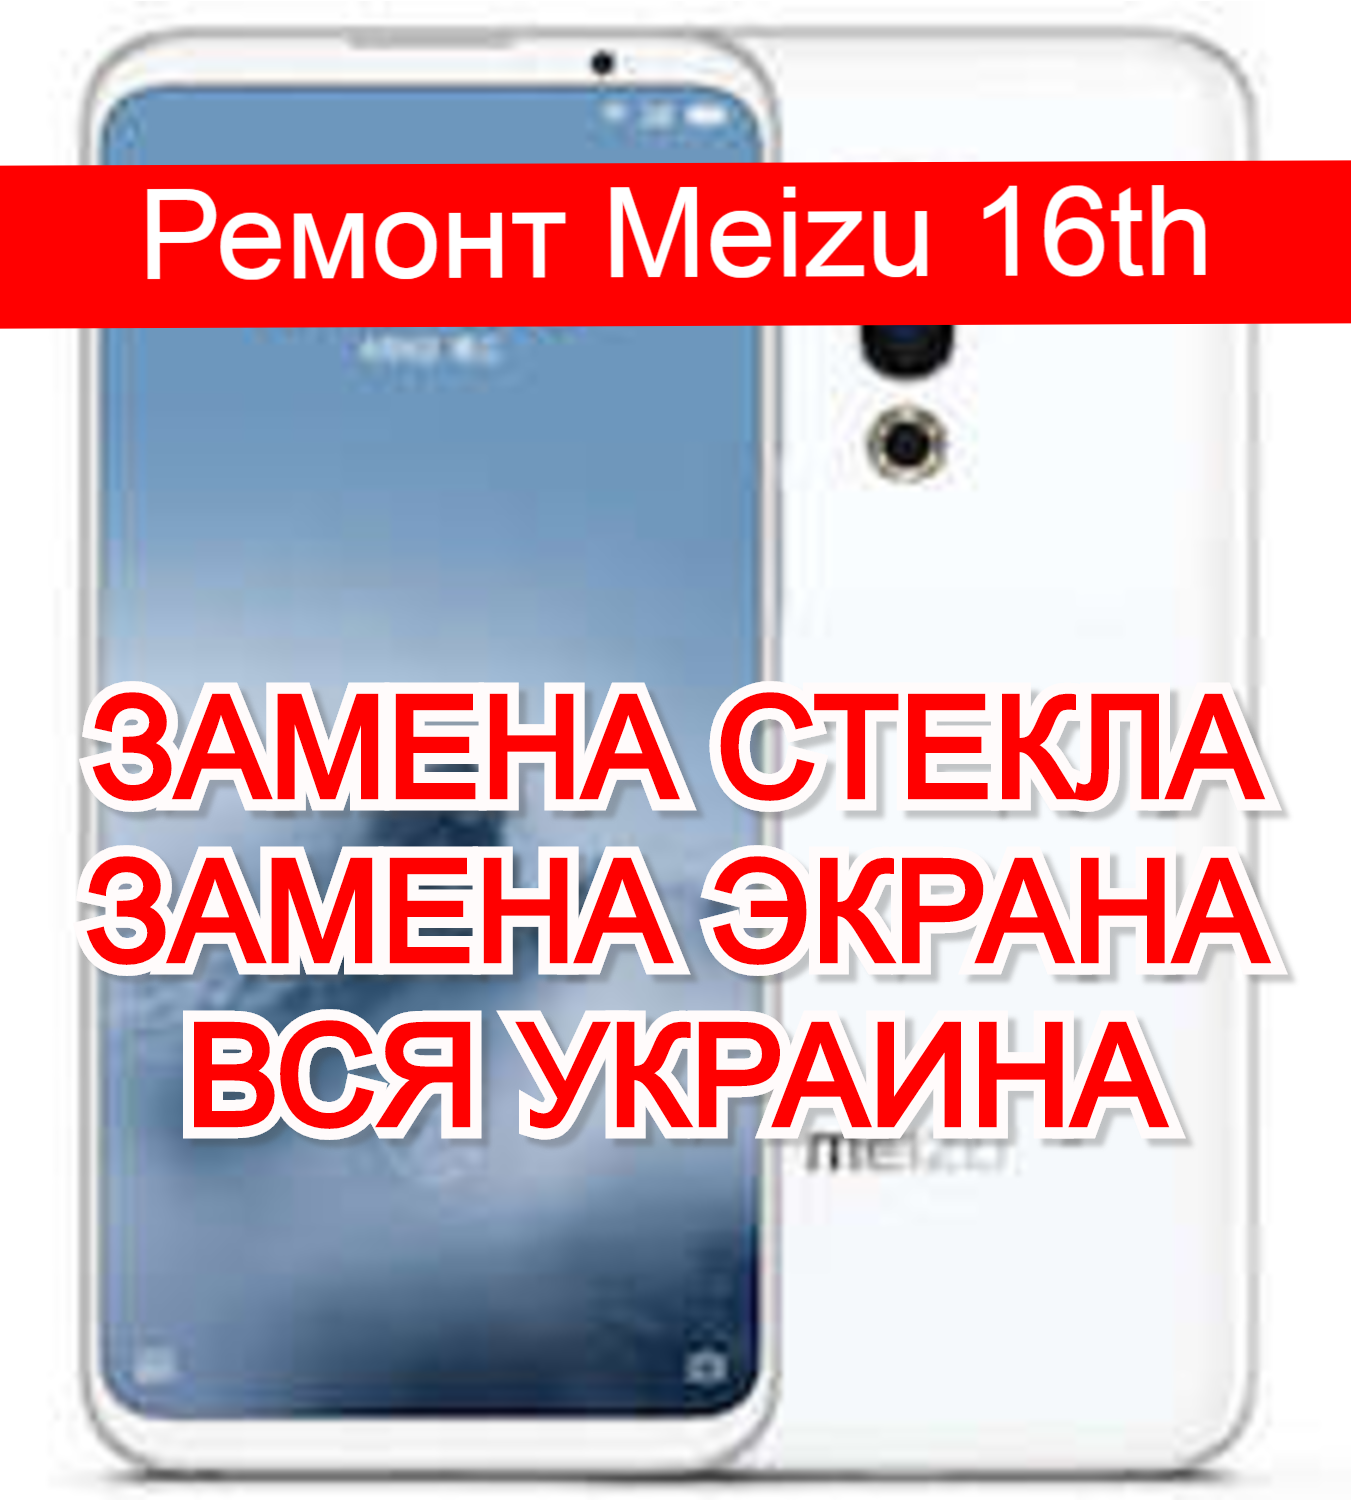 Ремонт Meizu 16th замена стекла и экрана